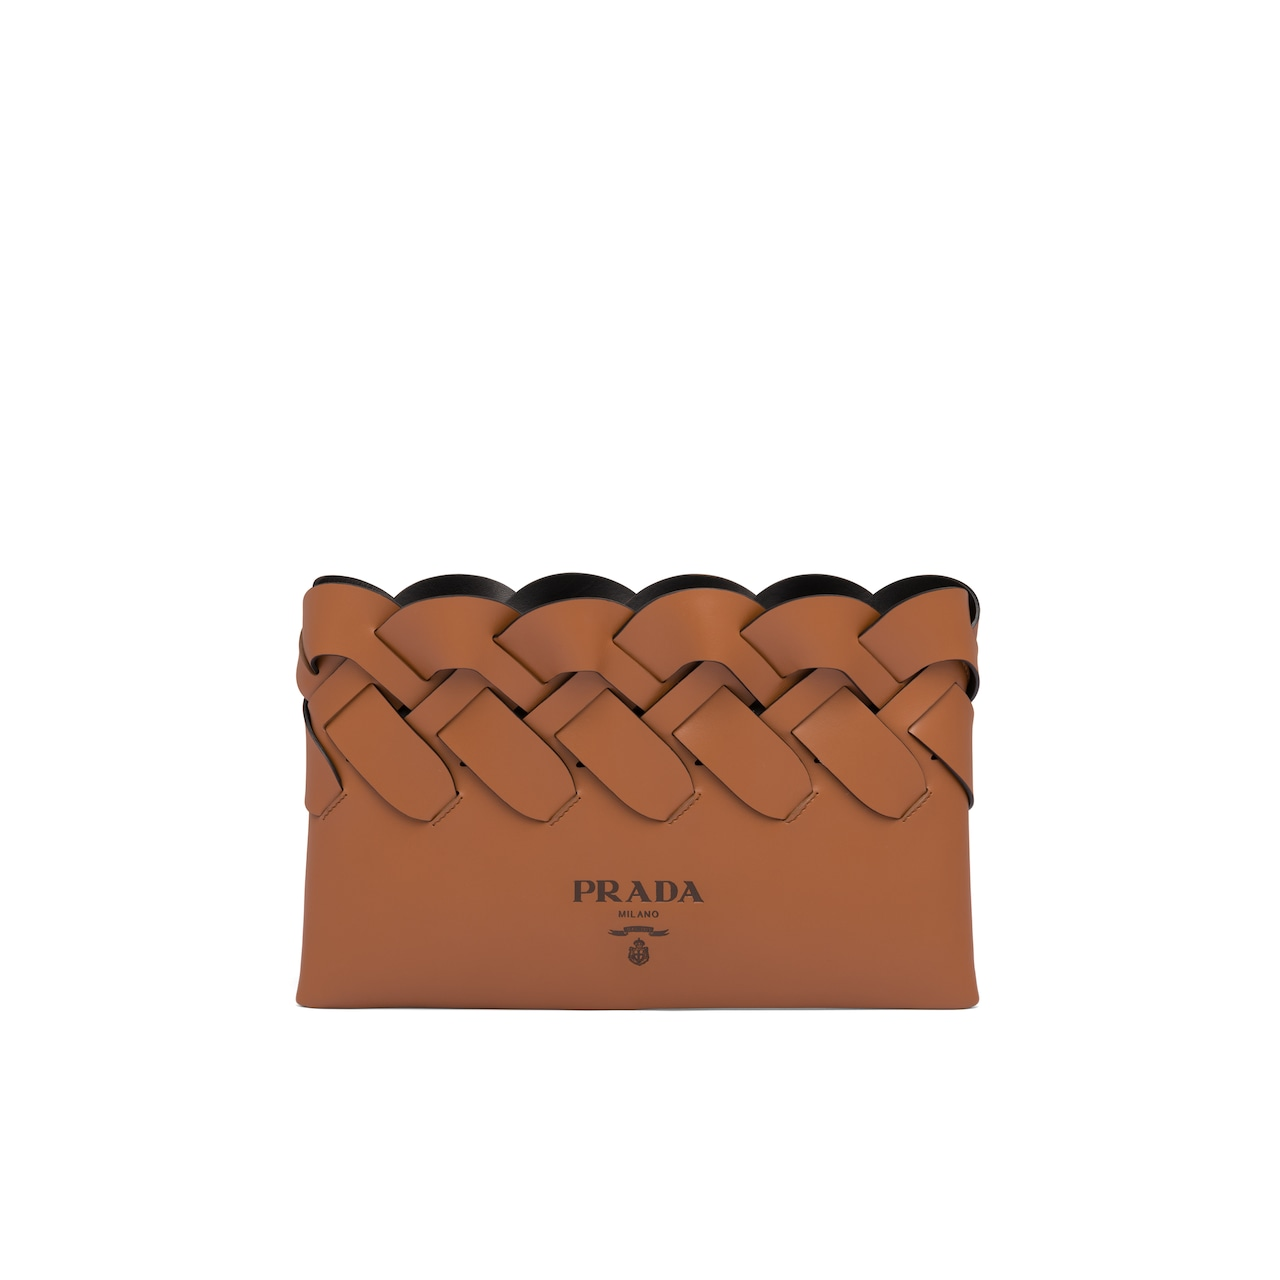 Prada Leather clutch with large woven motif 1